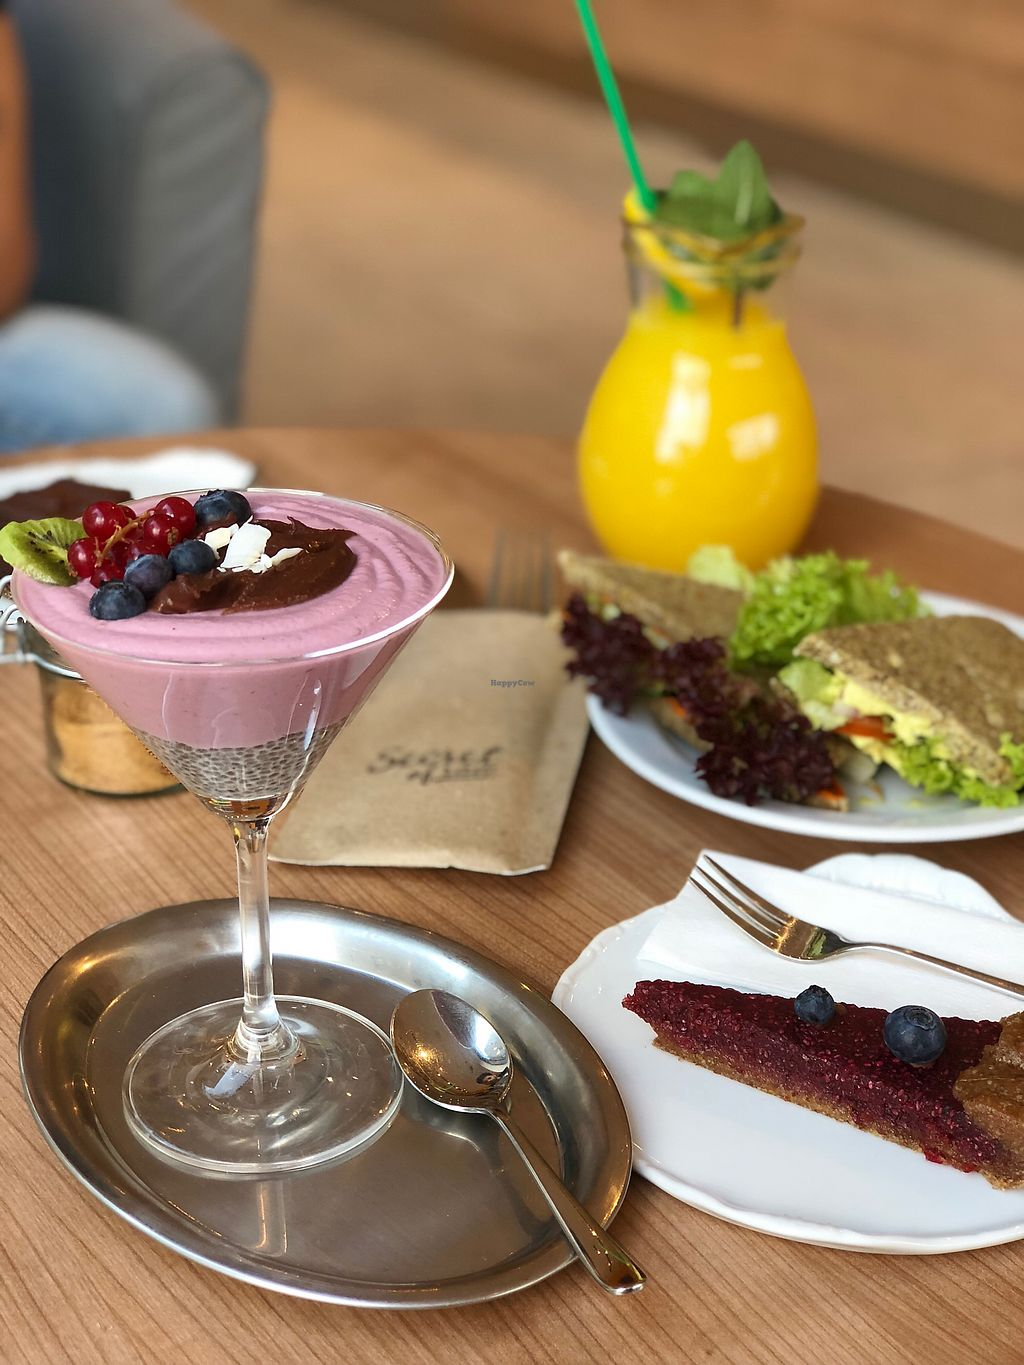 """Photo of Secret of Raw  by <a href=""""/members/profile/flubbrik"""">flubbrik</a> <br/>The best chia dessert <br/> February 18, 2018  - <a href='/contact/abuse/image/86428/361032'>Report</a>"""